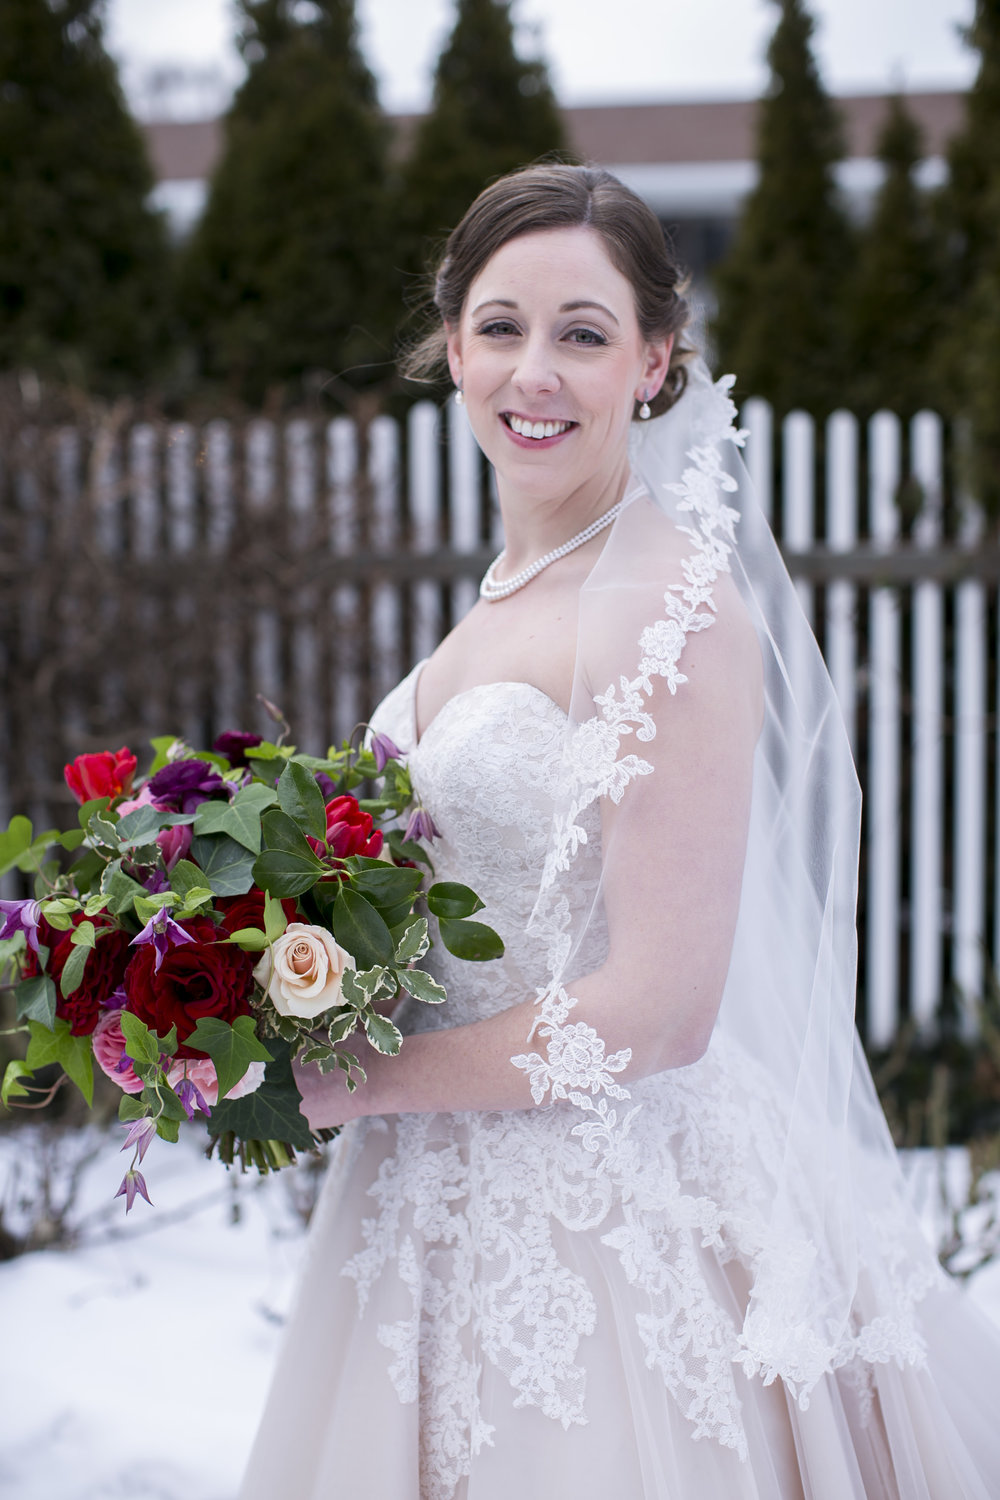 Niagara-Wedding-Photographers-Pillar-and-Post-Wedding-Niagara-on-the-Lake-Winter-Wedding-photography-by-Eva-Derrick-Photography-026.JPG